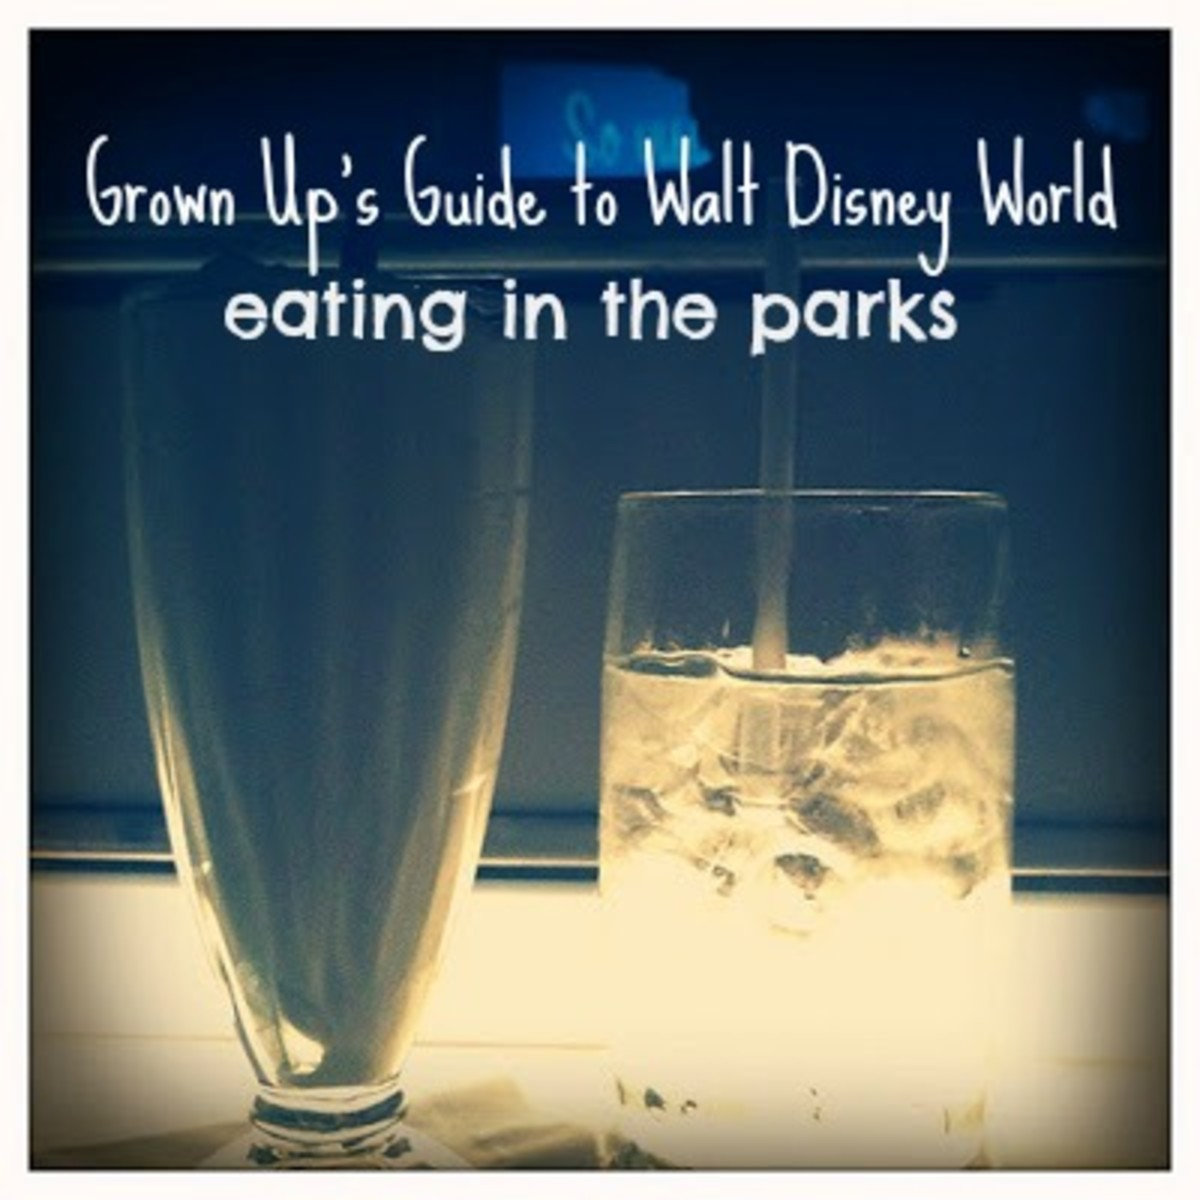 Grown Up's Guide to Walt Disney World - Eating in the Parks